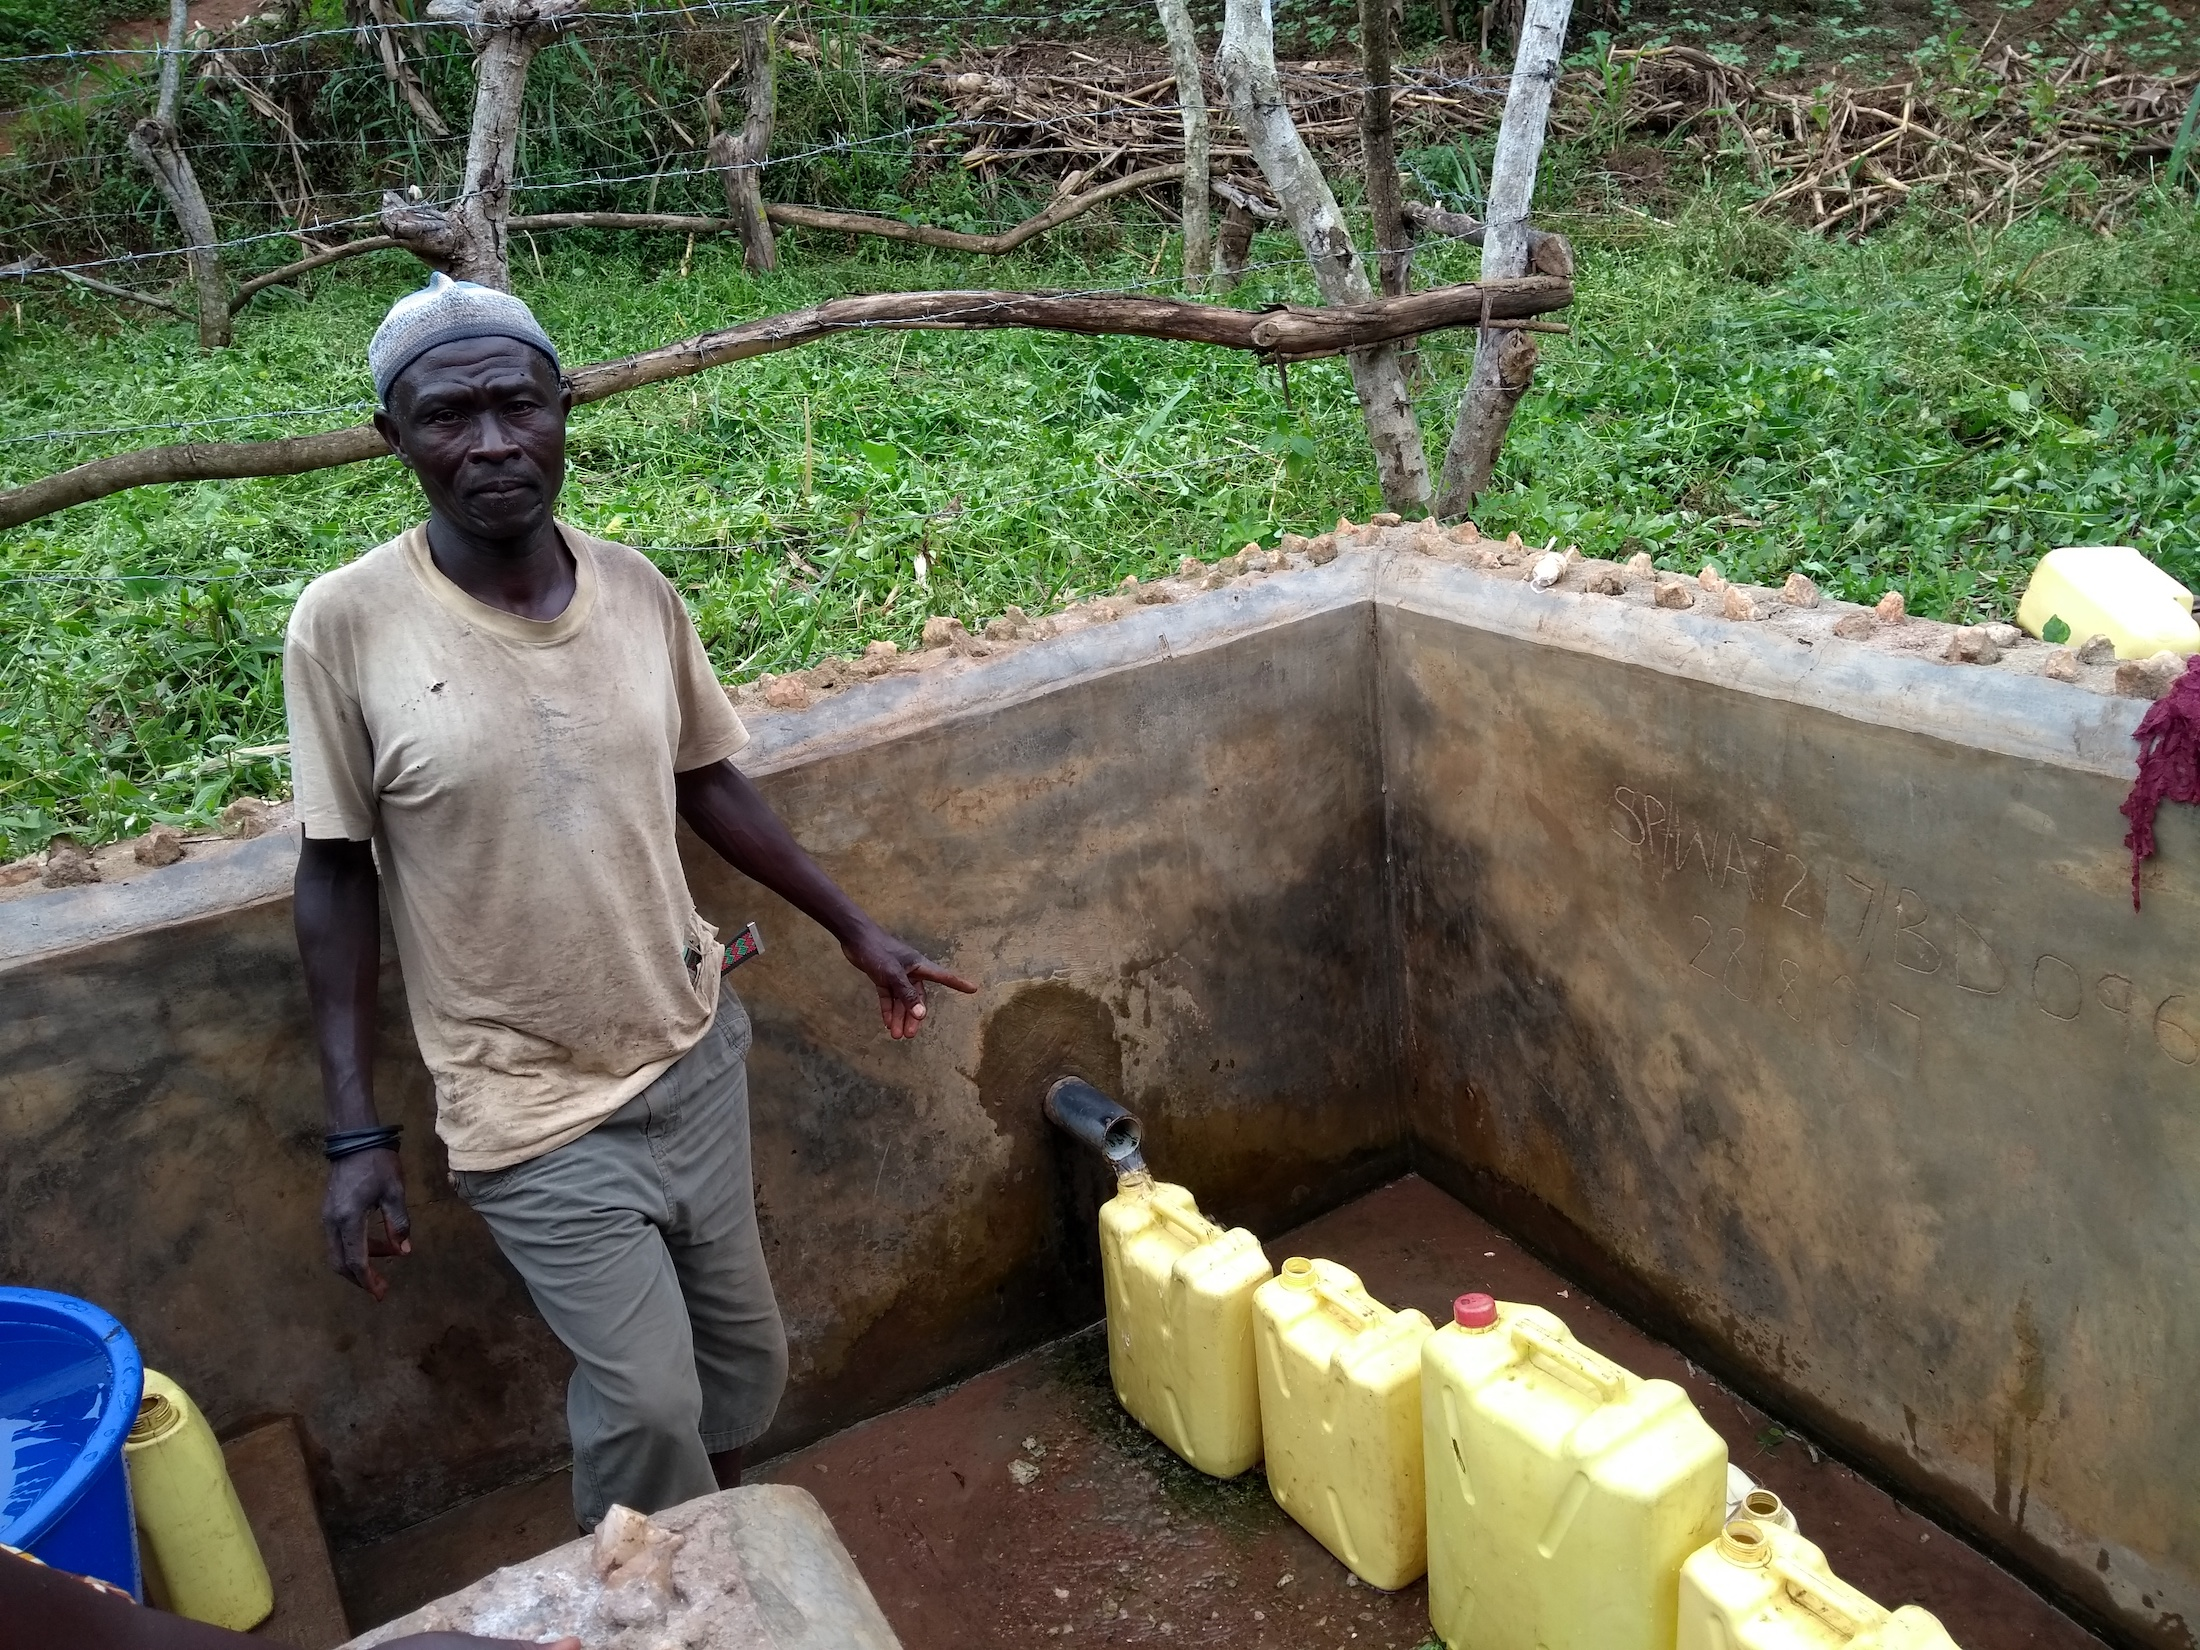 The Water Project : uganda6087-ochakire-muzamil-water-point-caretaker